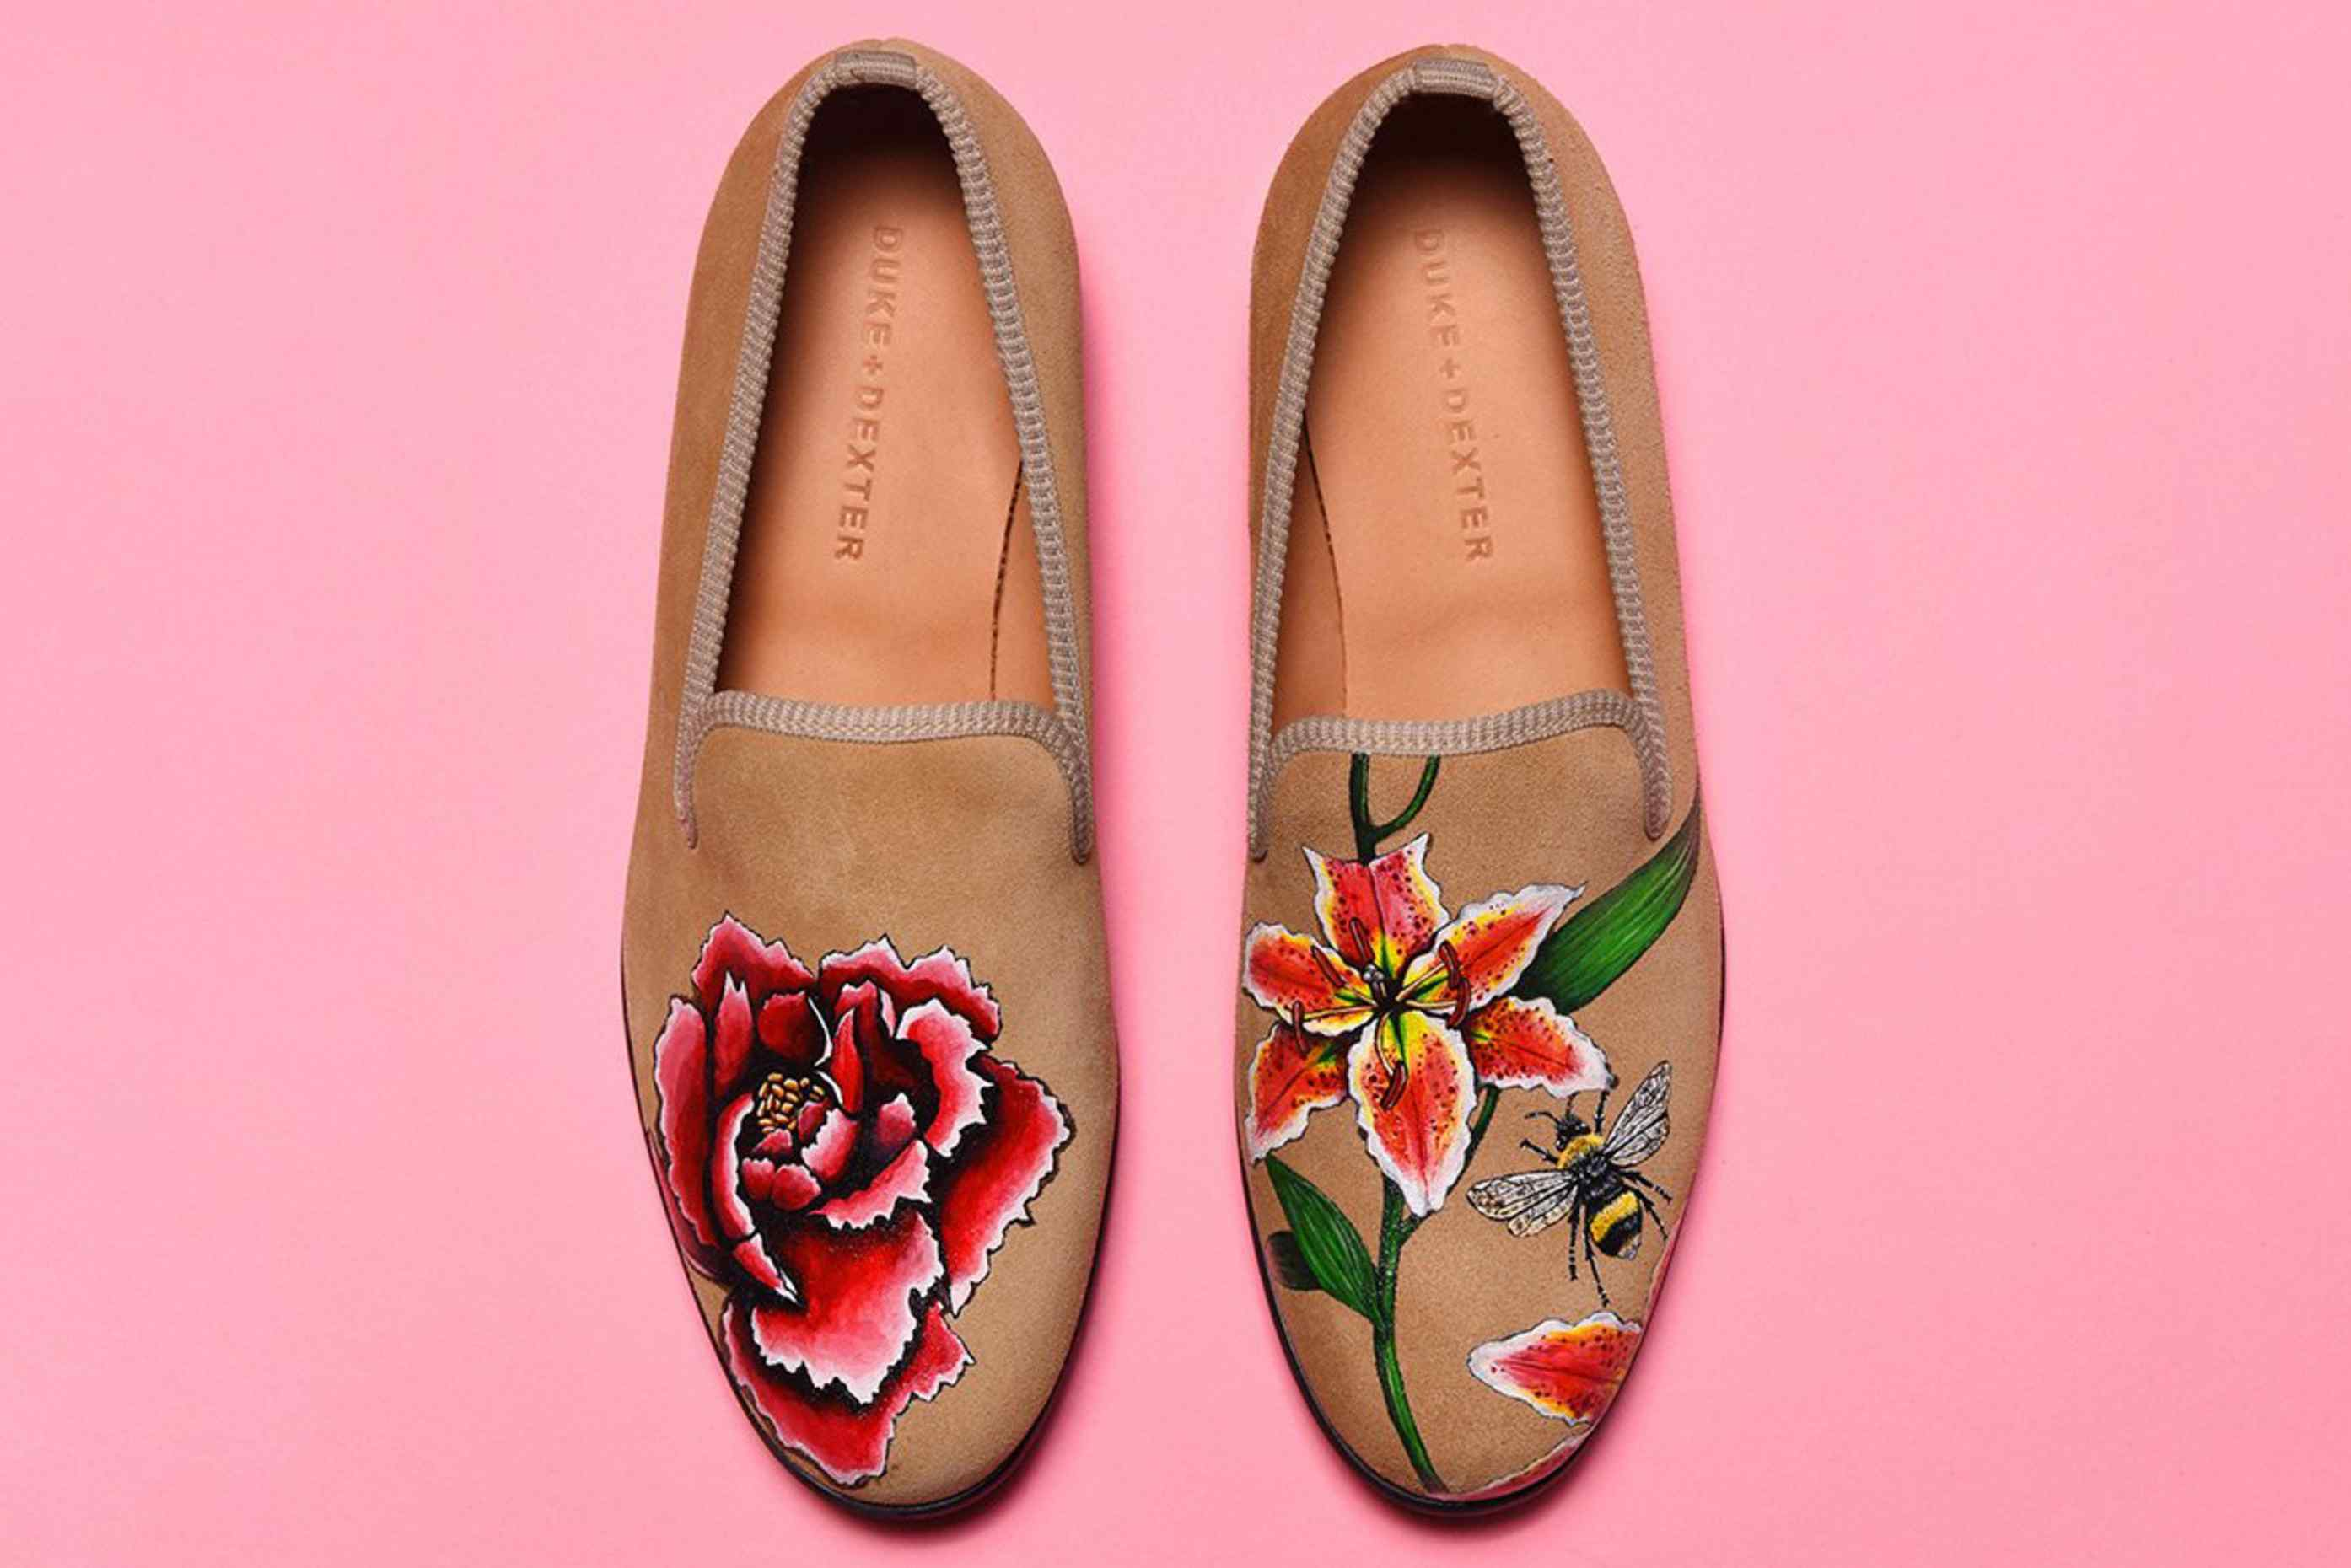 Discover Duke Dexter Exclusive Hand Painted Shoes